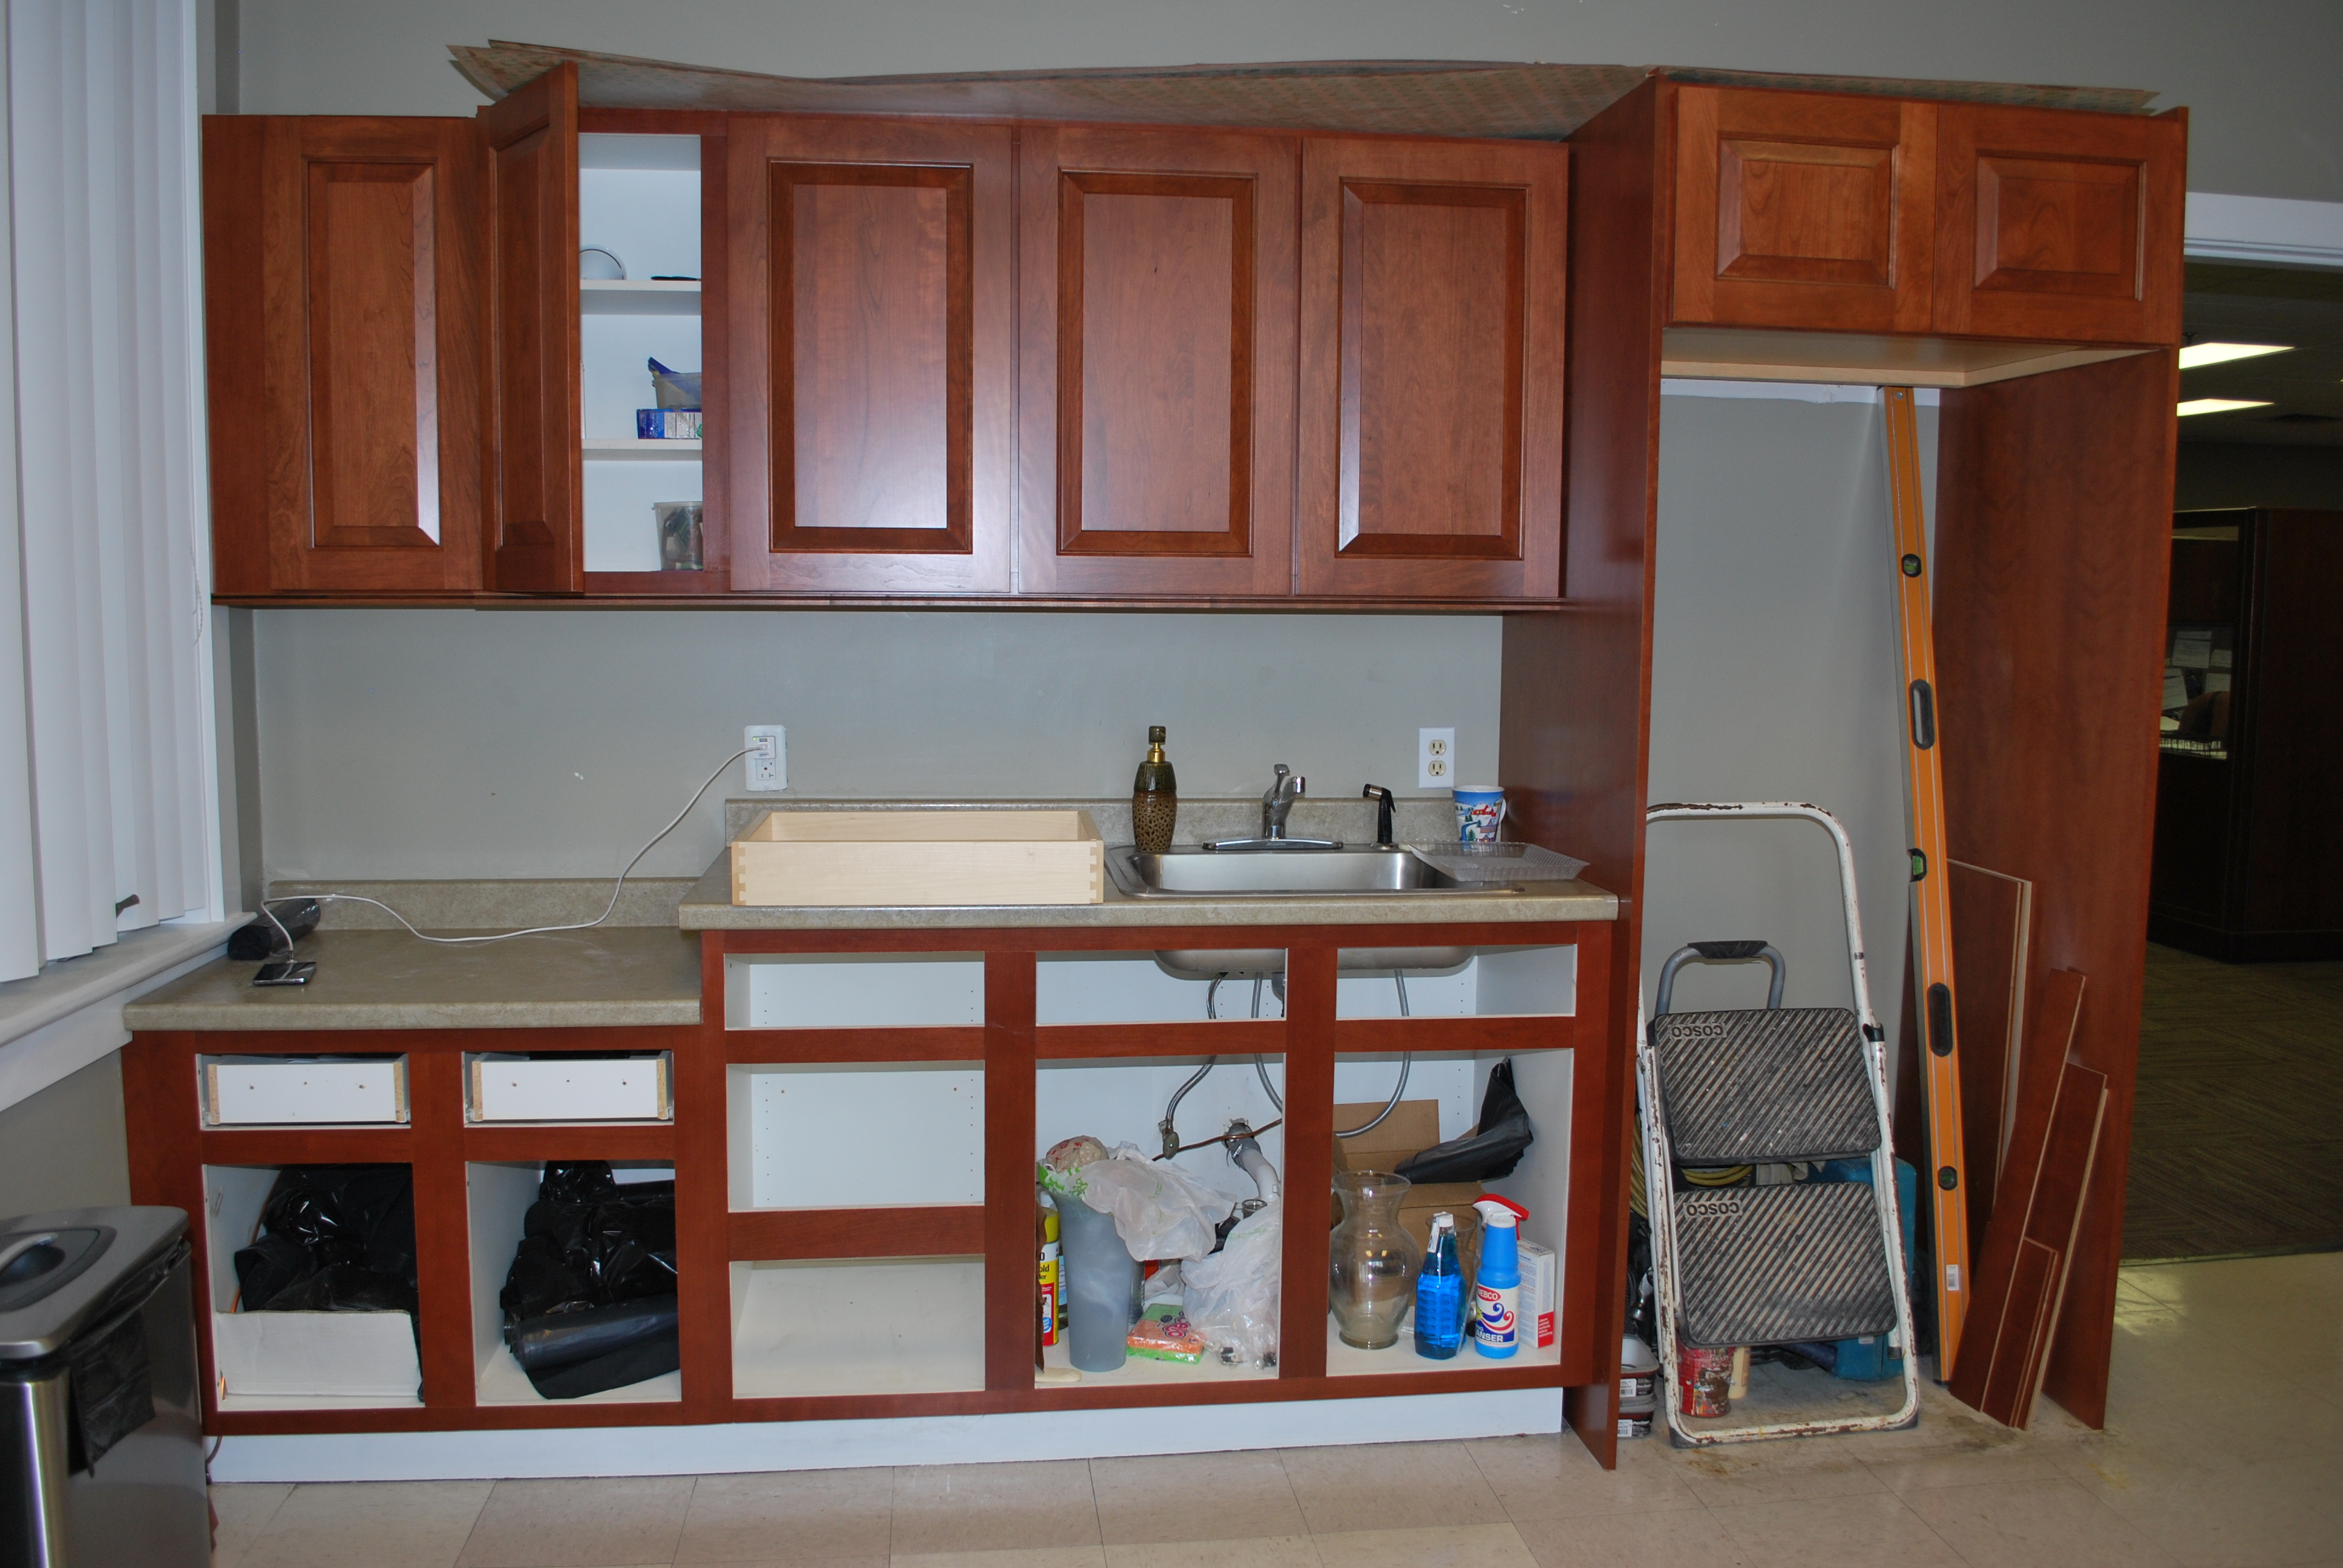 DURING REFACING - contents can be left in the cabinets. But the drawers were removed and we selected to replace the originals with new wood drawer boxes in addition to the new cherry wood drawer fronts.